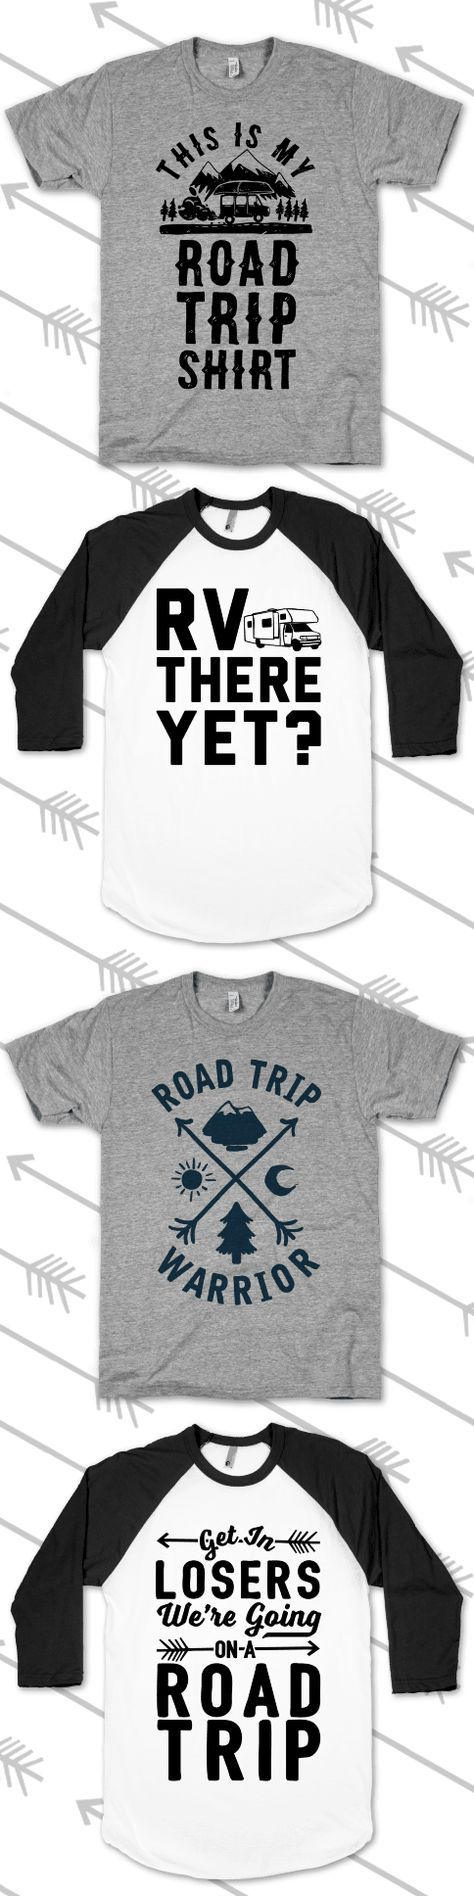 Make time for a road trip to drive off that winter wanderlust. Grab these shirts, pack the car, and head off on a holiday trip!